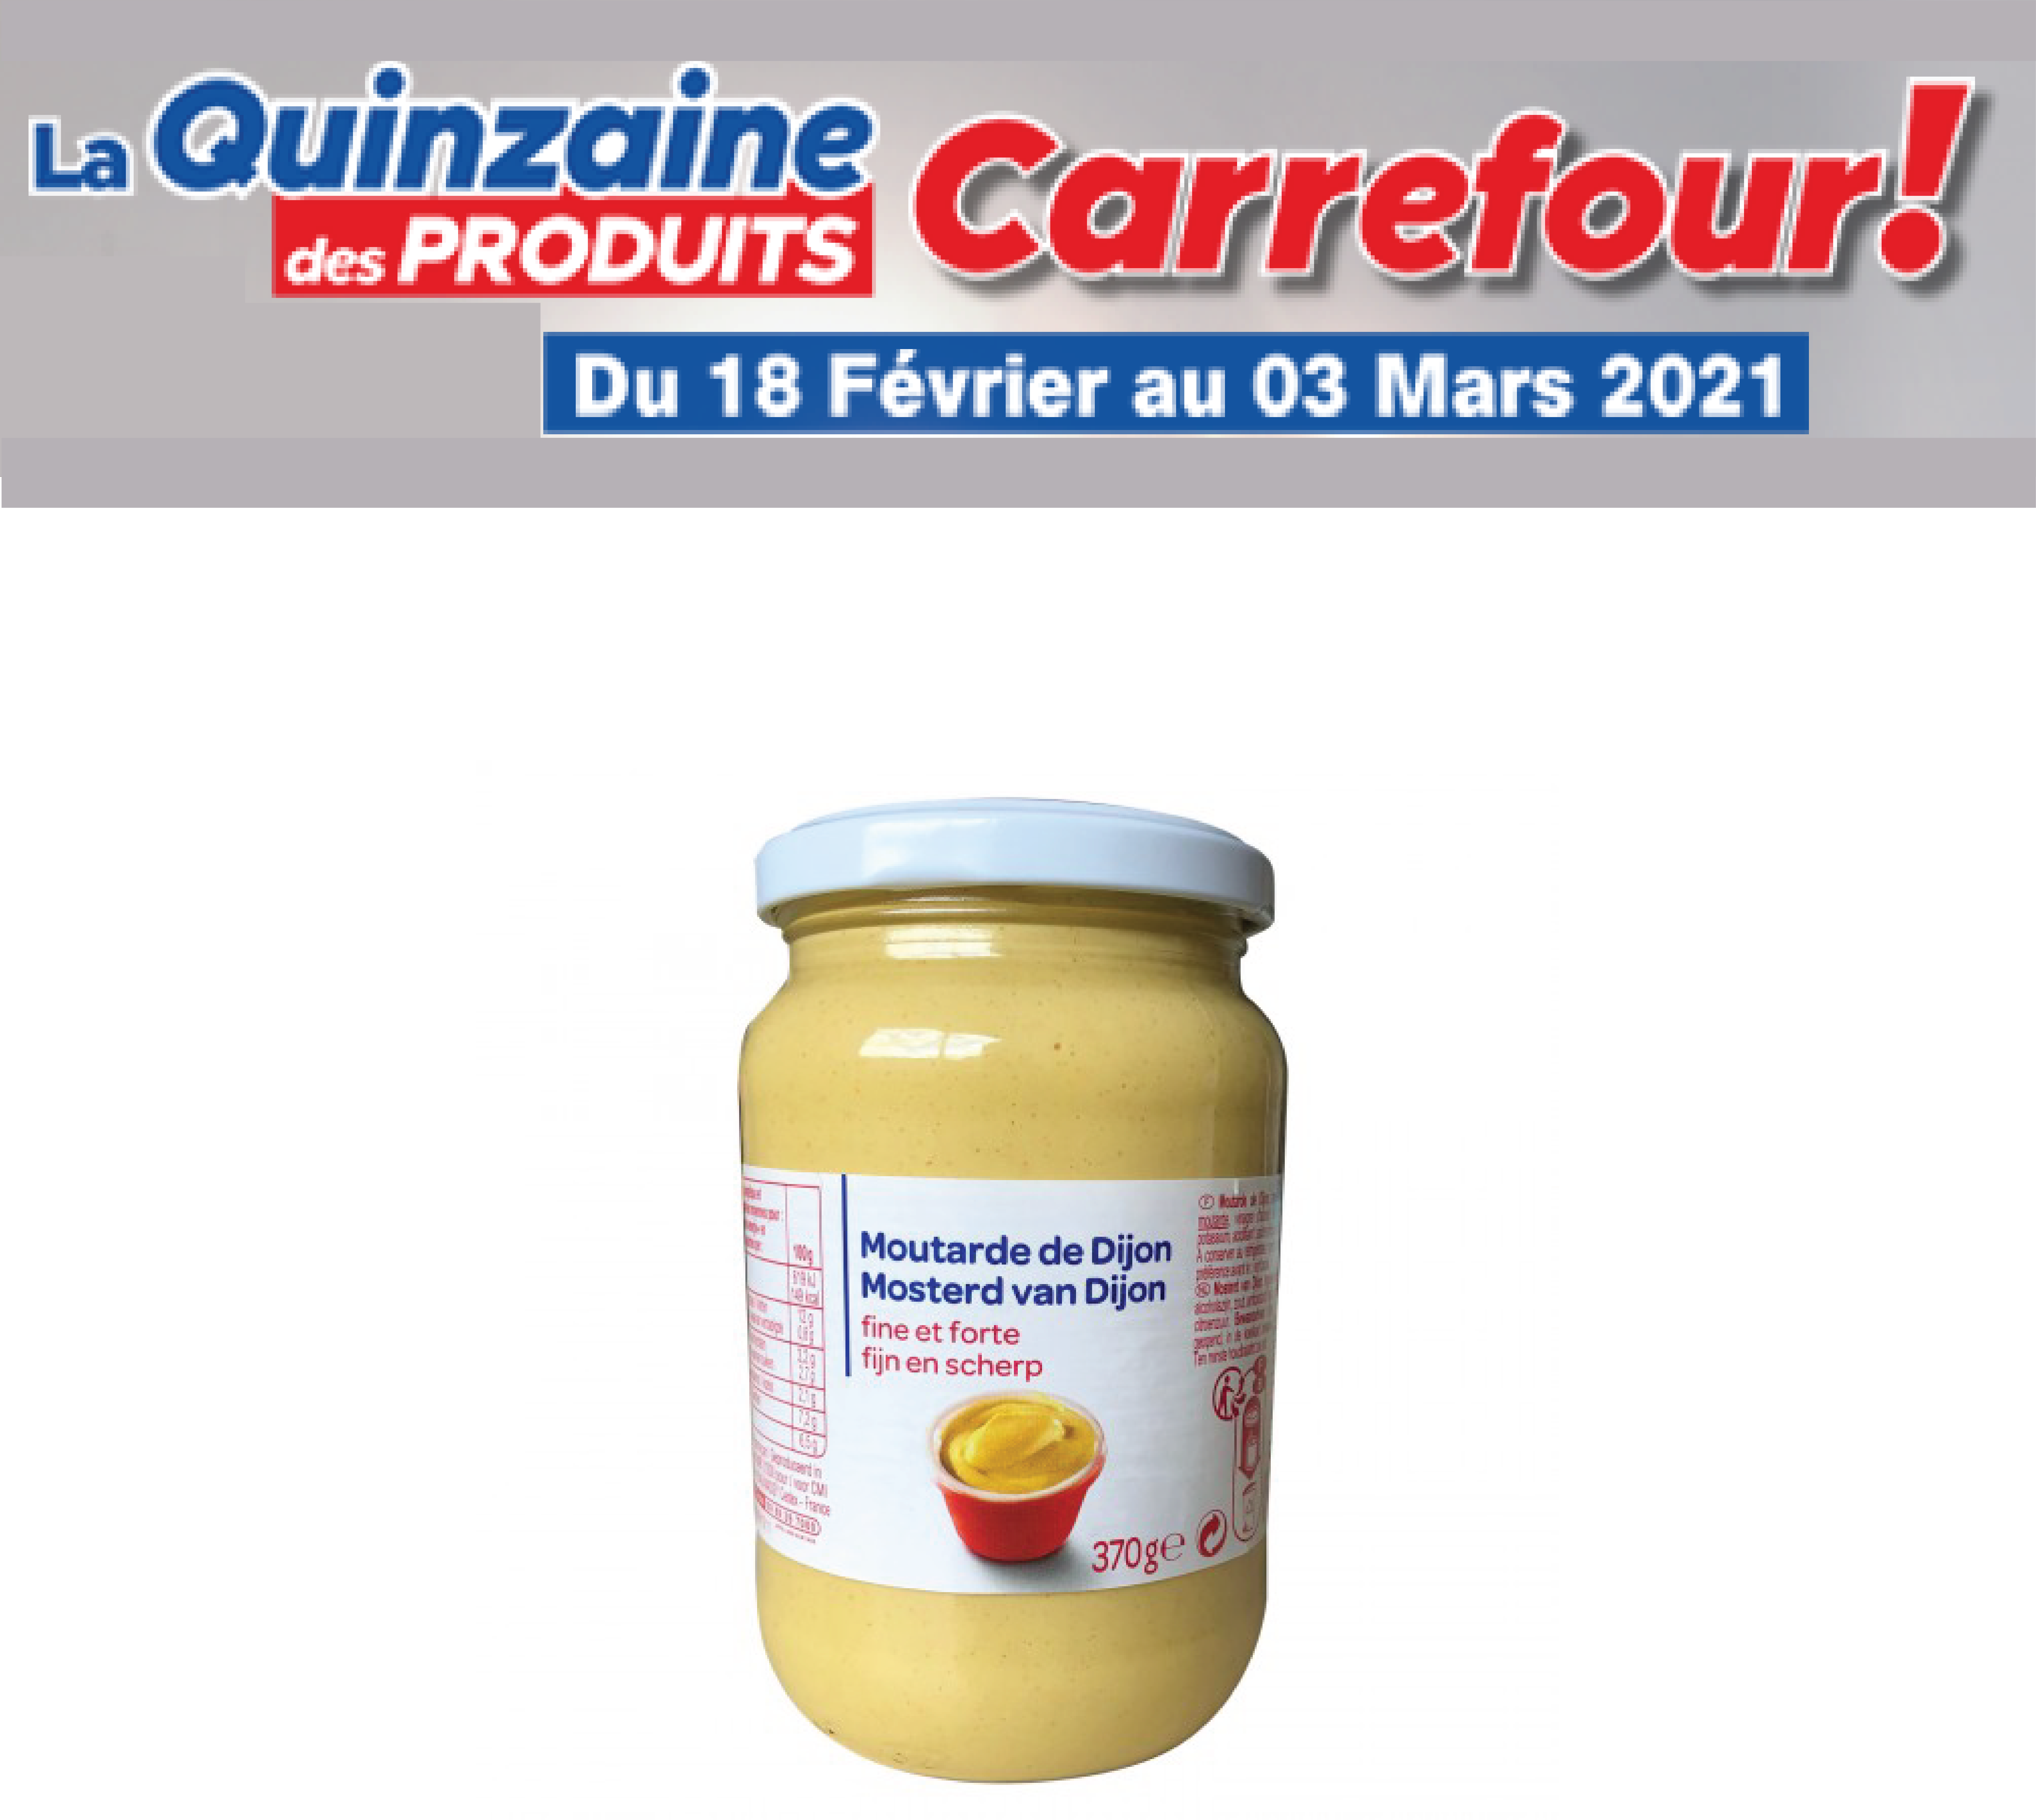 Moutarde Carrefour 370g